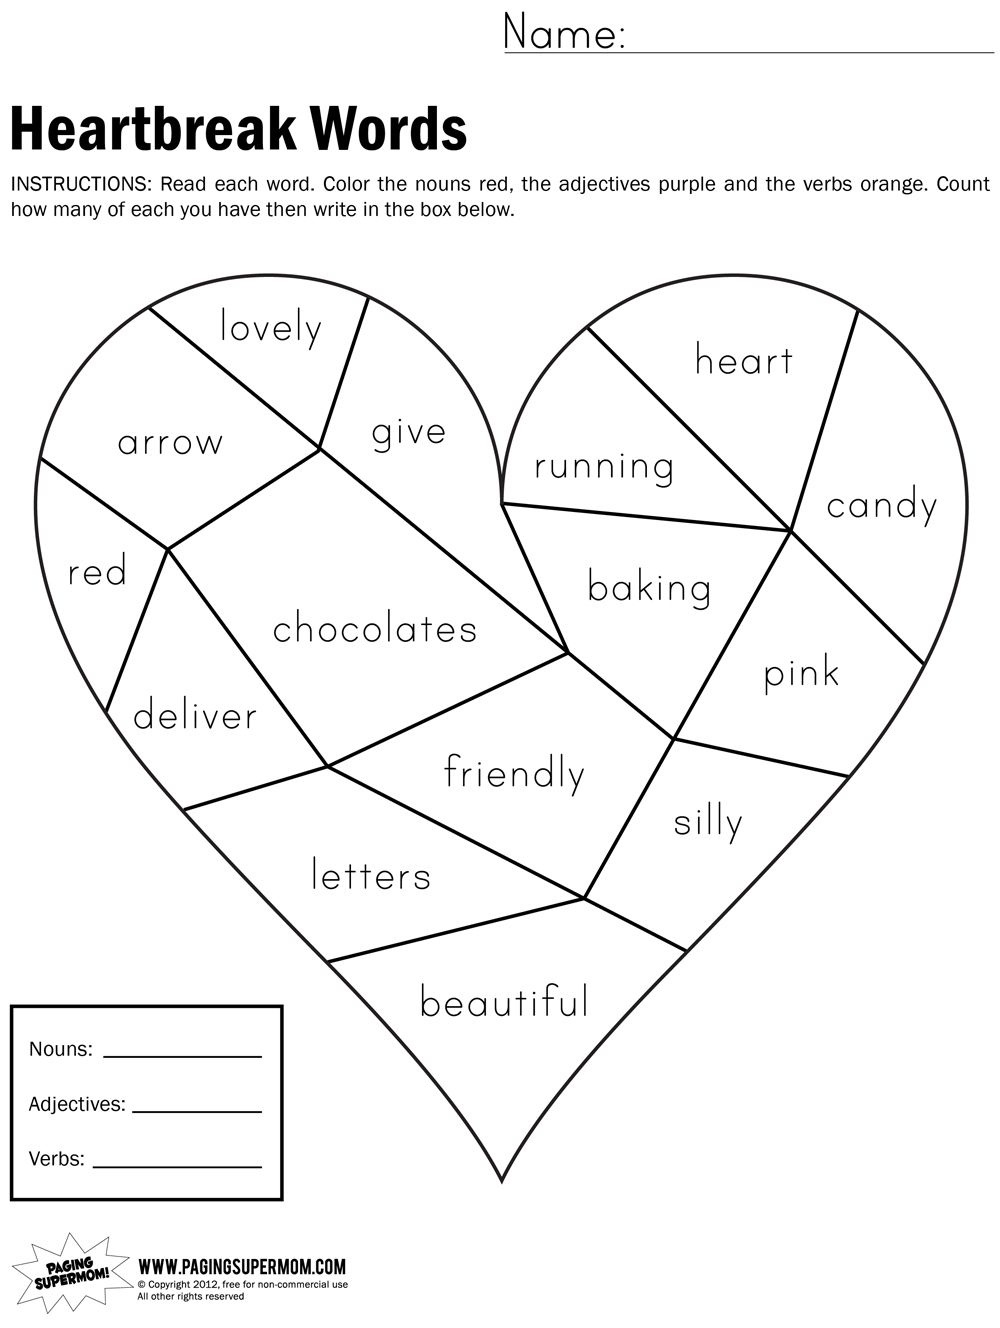 Heartbreak Words Free Printable Worksheet | Education---February - Free Valentine Math Worksheets And Printables